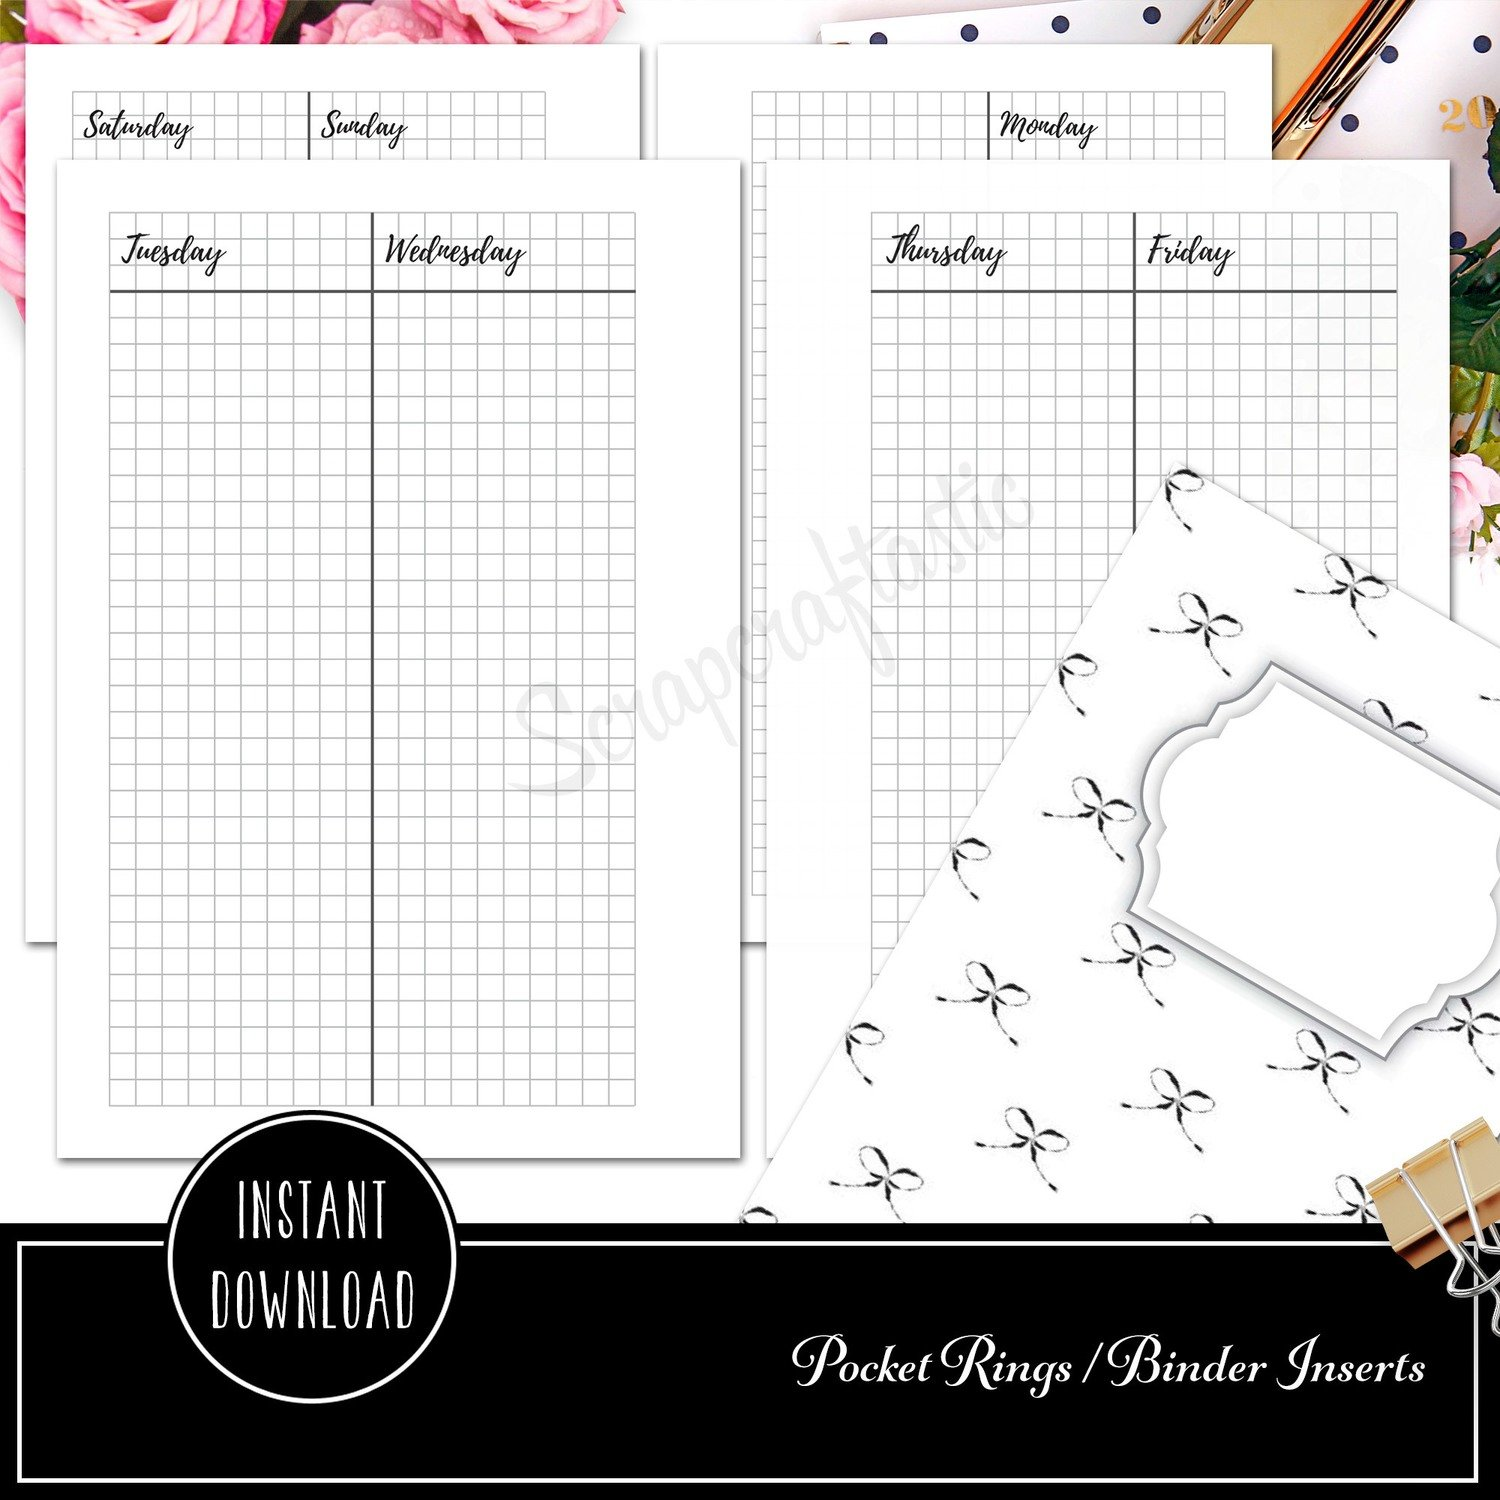 POCKET RINGS - Week On Four Pages (WO4P) Vertical Grid Printable Planer Inserts